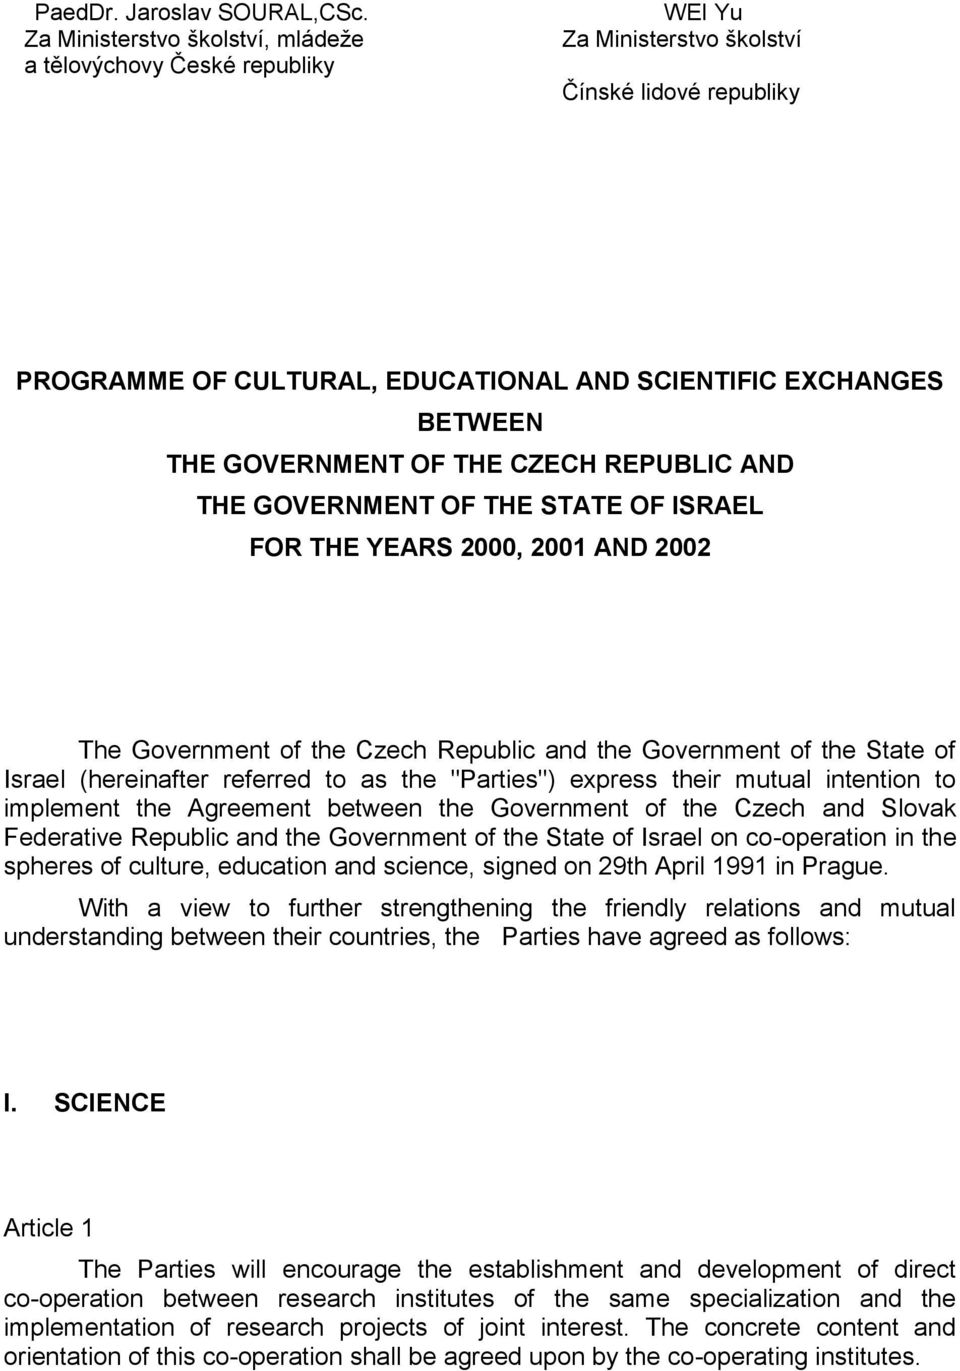 GOVERNMENT OF THE CZECH REPUBLIC AND THE GOVERNMENT OF THE STATE OF ISRAEL FOR THE YEARS 2000, 2001 AND 2002 The Government of the Czech Republic and the Government of the State of Israel